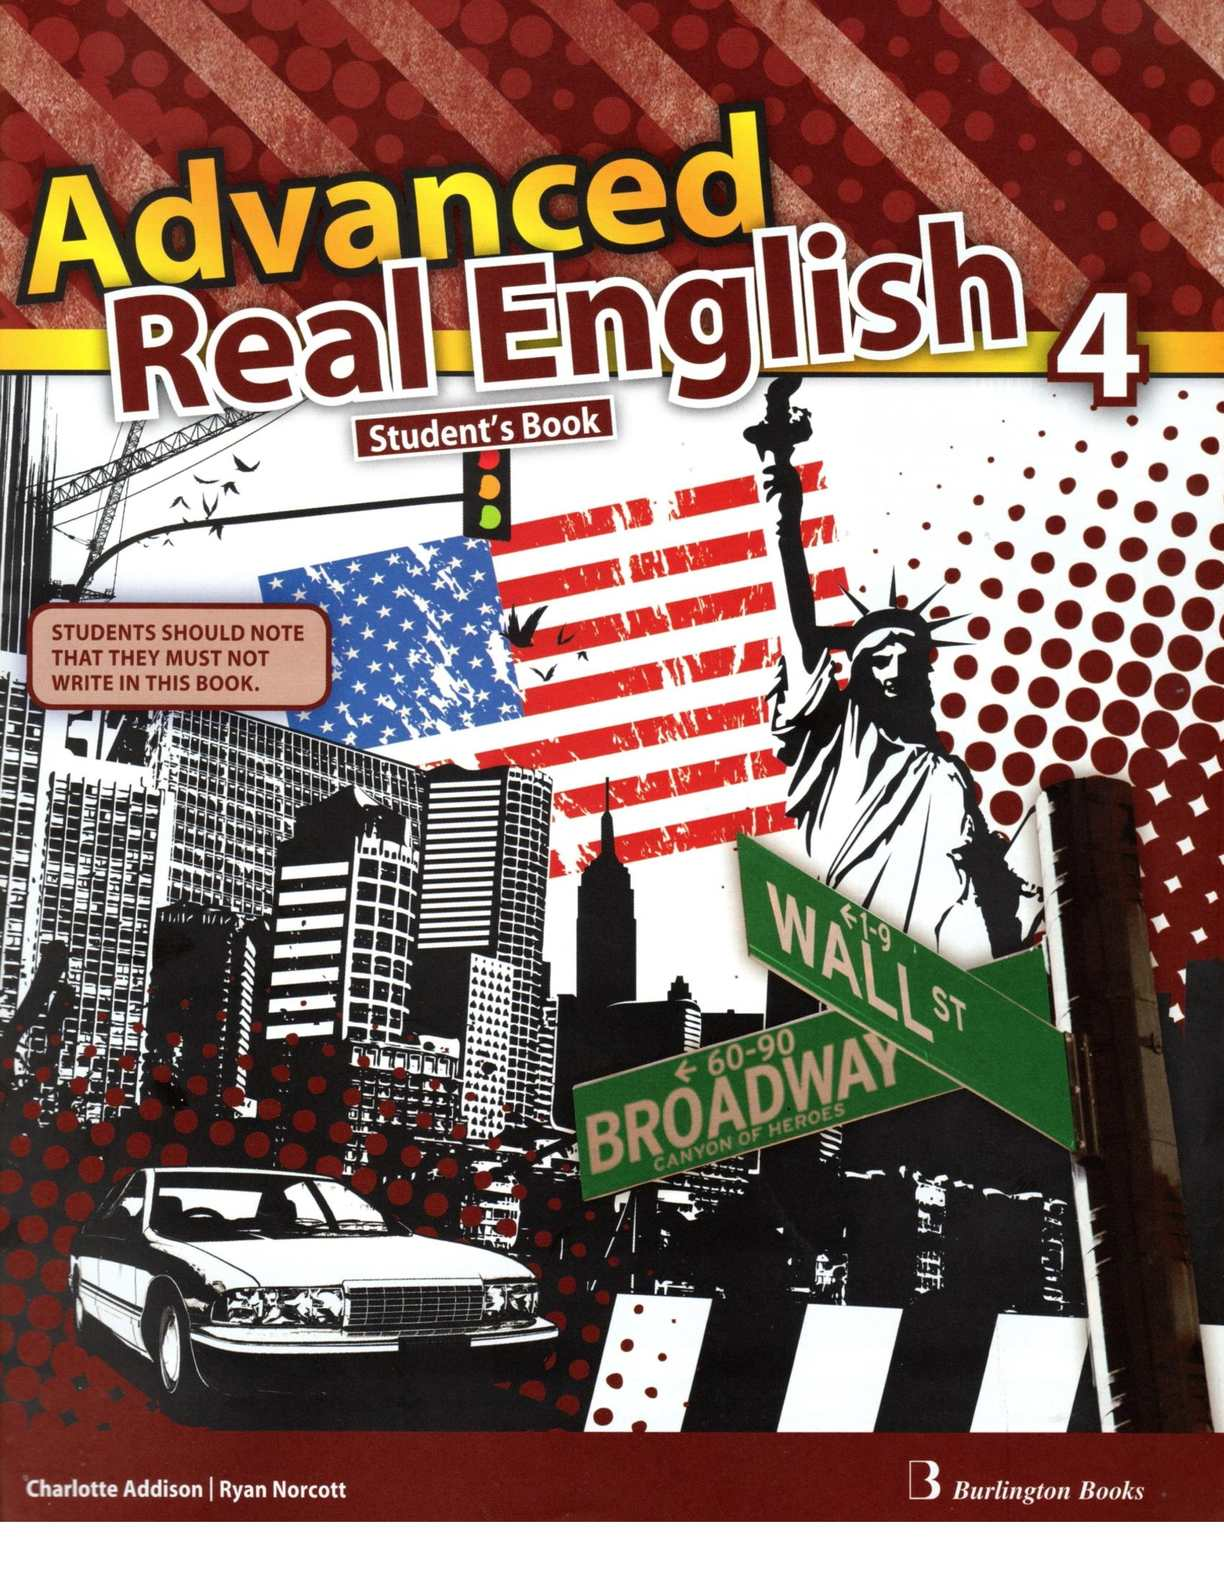 Advanced Real English 4 Students' Book pages 1 to 18